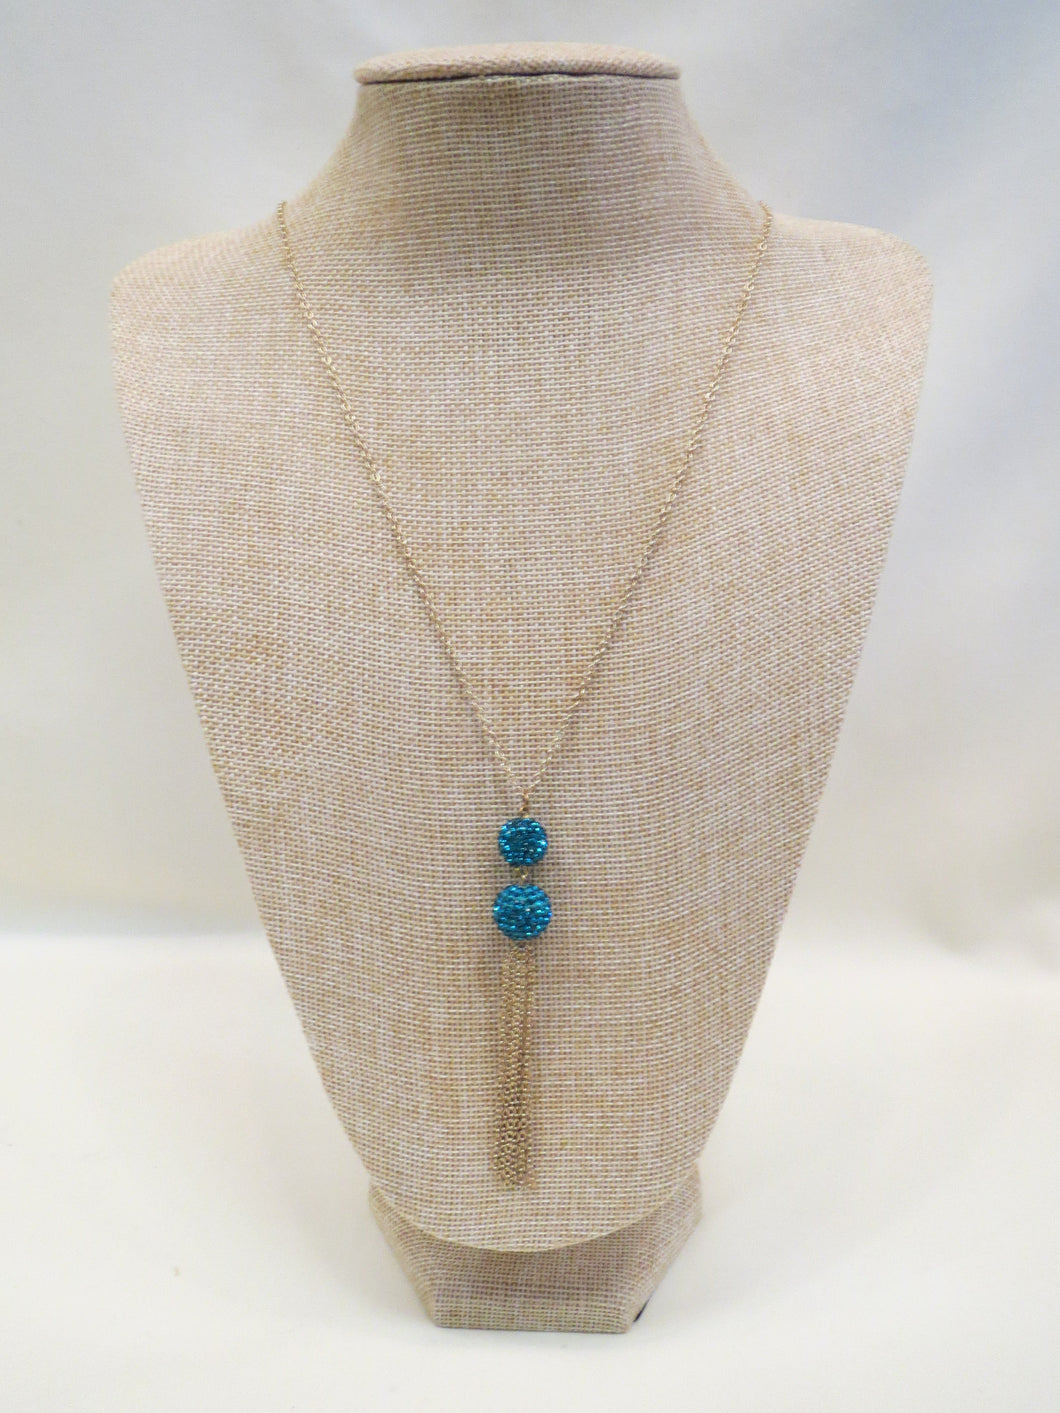 ADO | Blue Swarovski Twin Tassel Necklace - All Decd Out